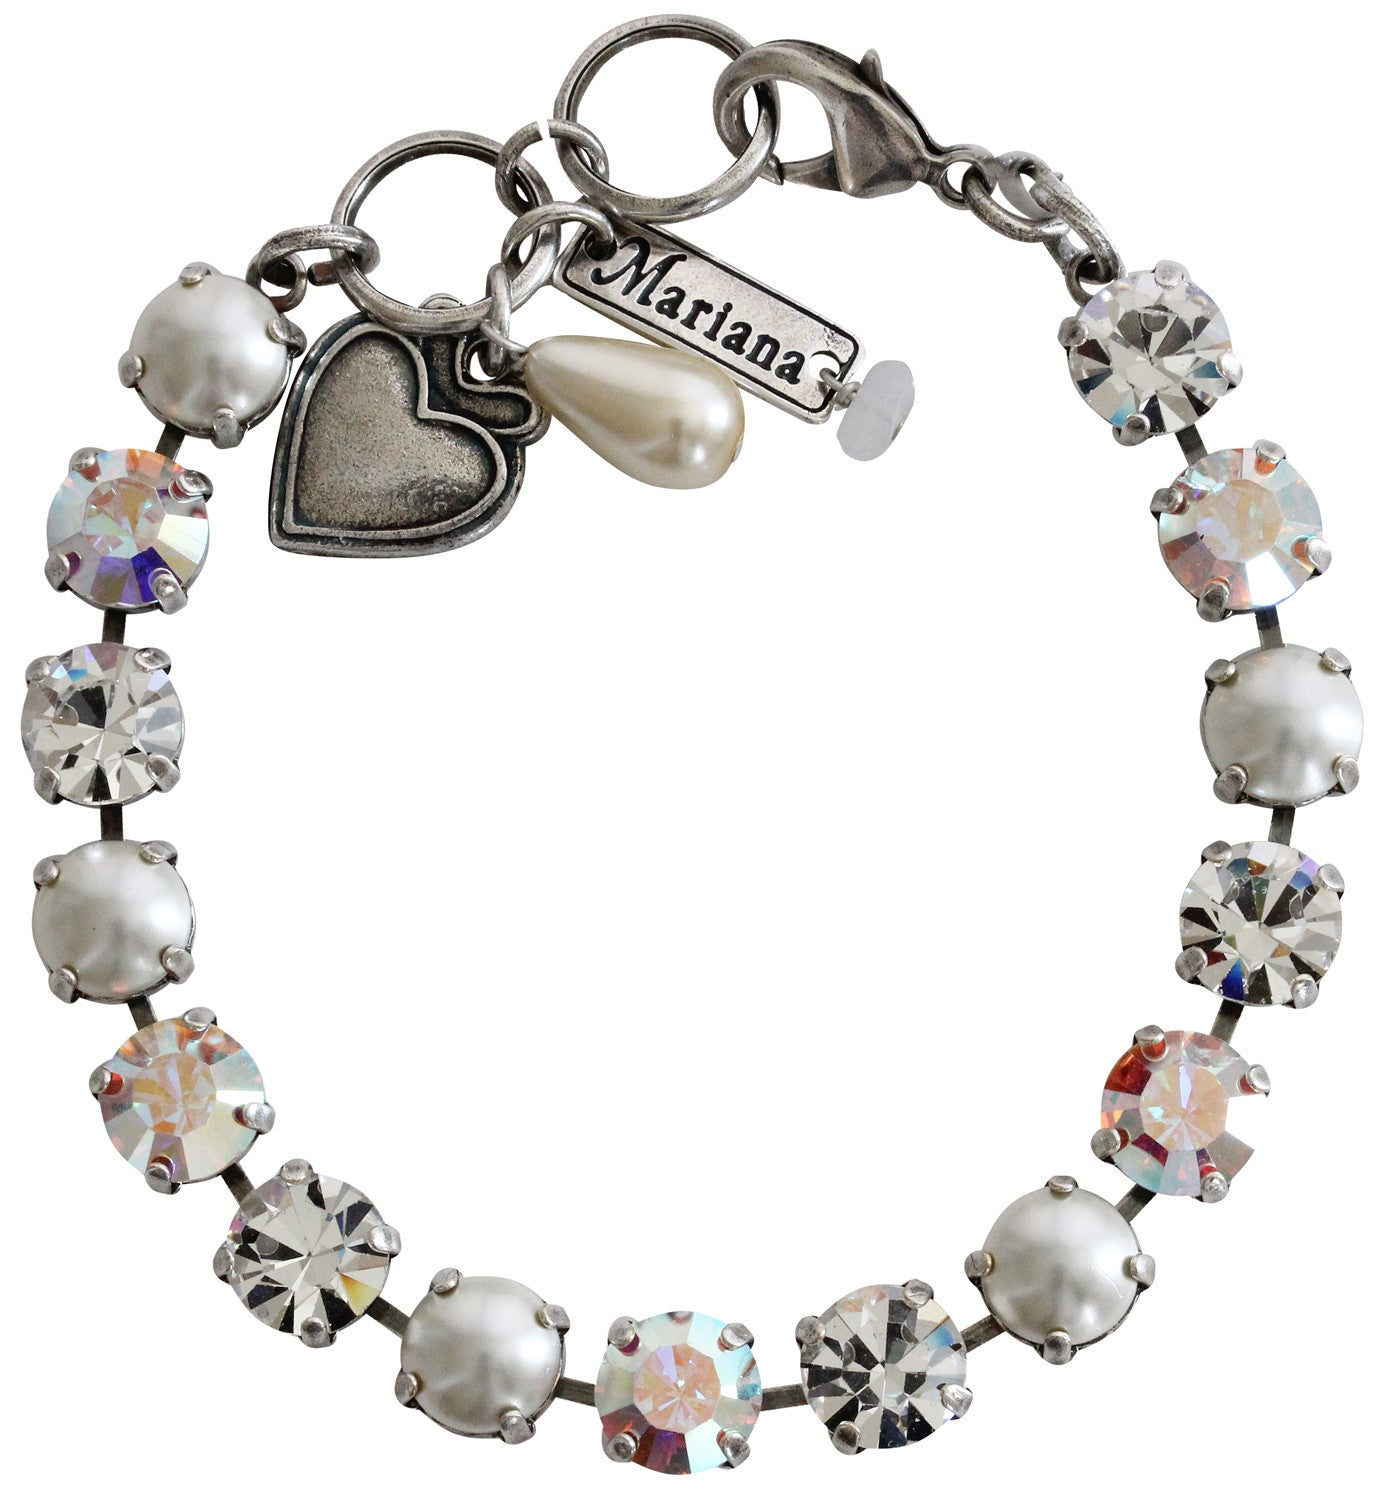 "Mariana Silver Plated Classic Shapes Swarovski Crystal Bracelet, 7.5"" Crystal Pearls 4252 M48001"